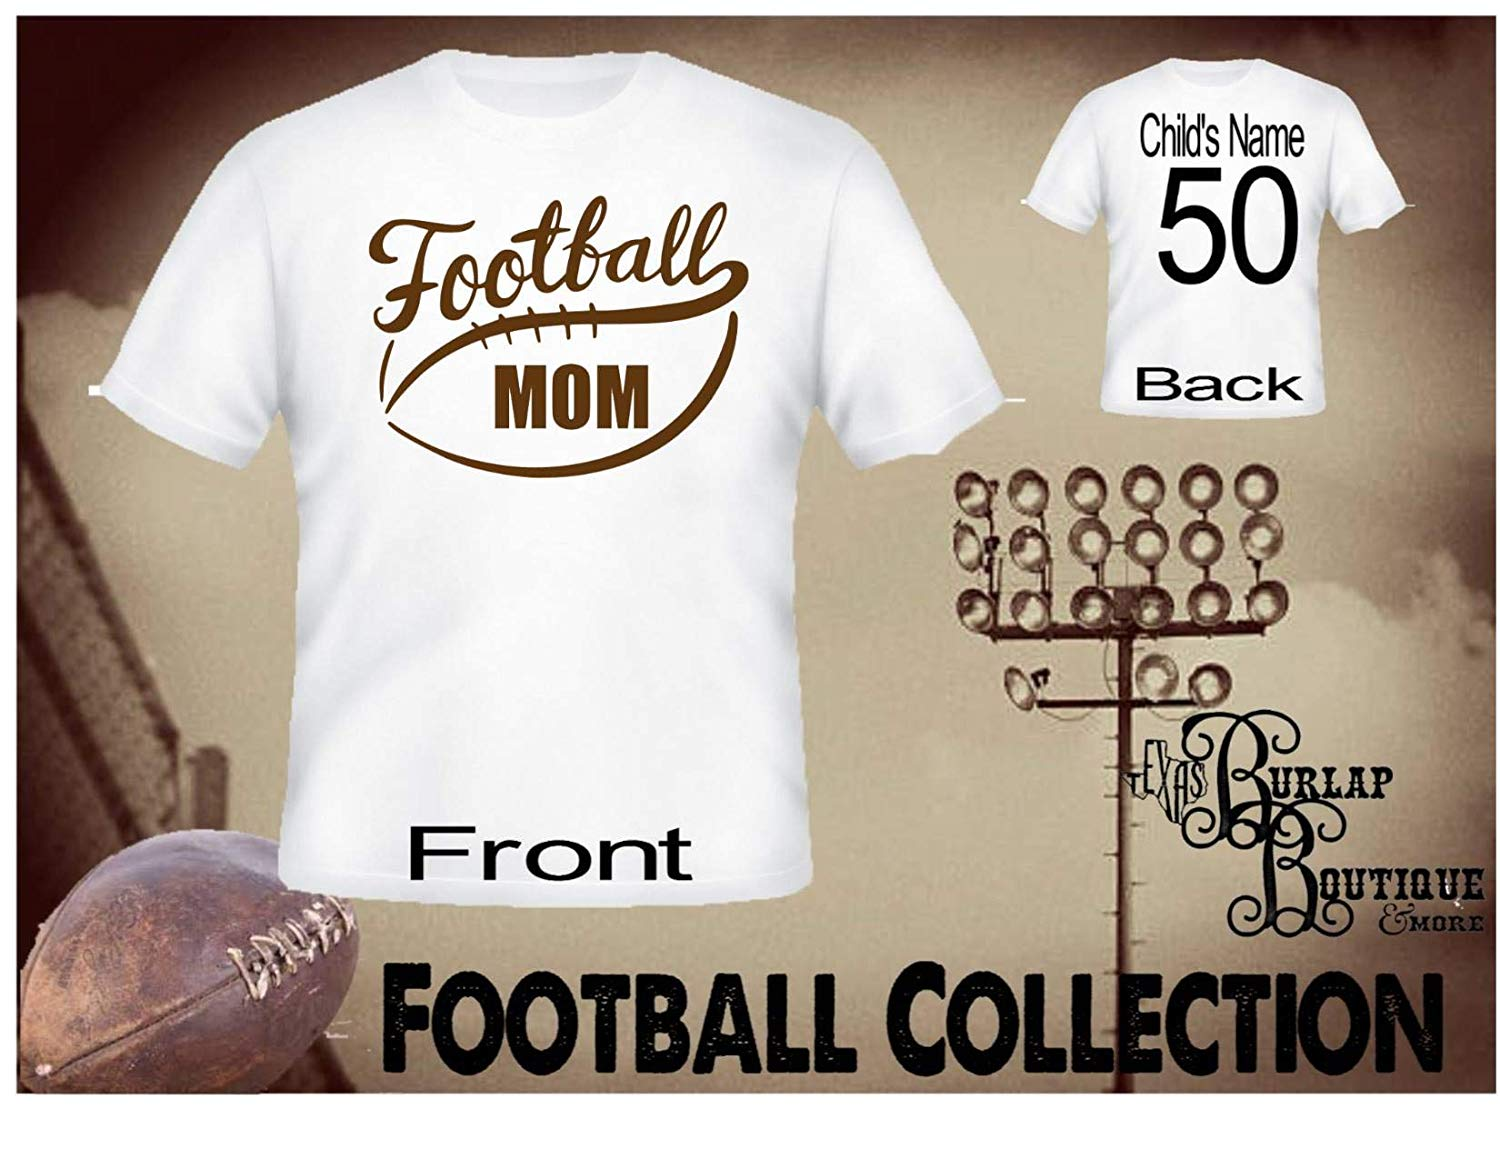 Handmade Personalized Football Shirt, Loud & Proud Football MOM, Tee, T - Shirt, Tshirt, Football Quotes, Kids, Girls, Adult, Sizes XS - 3XL Several colors